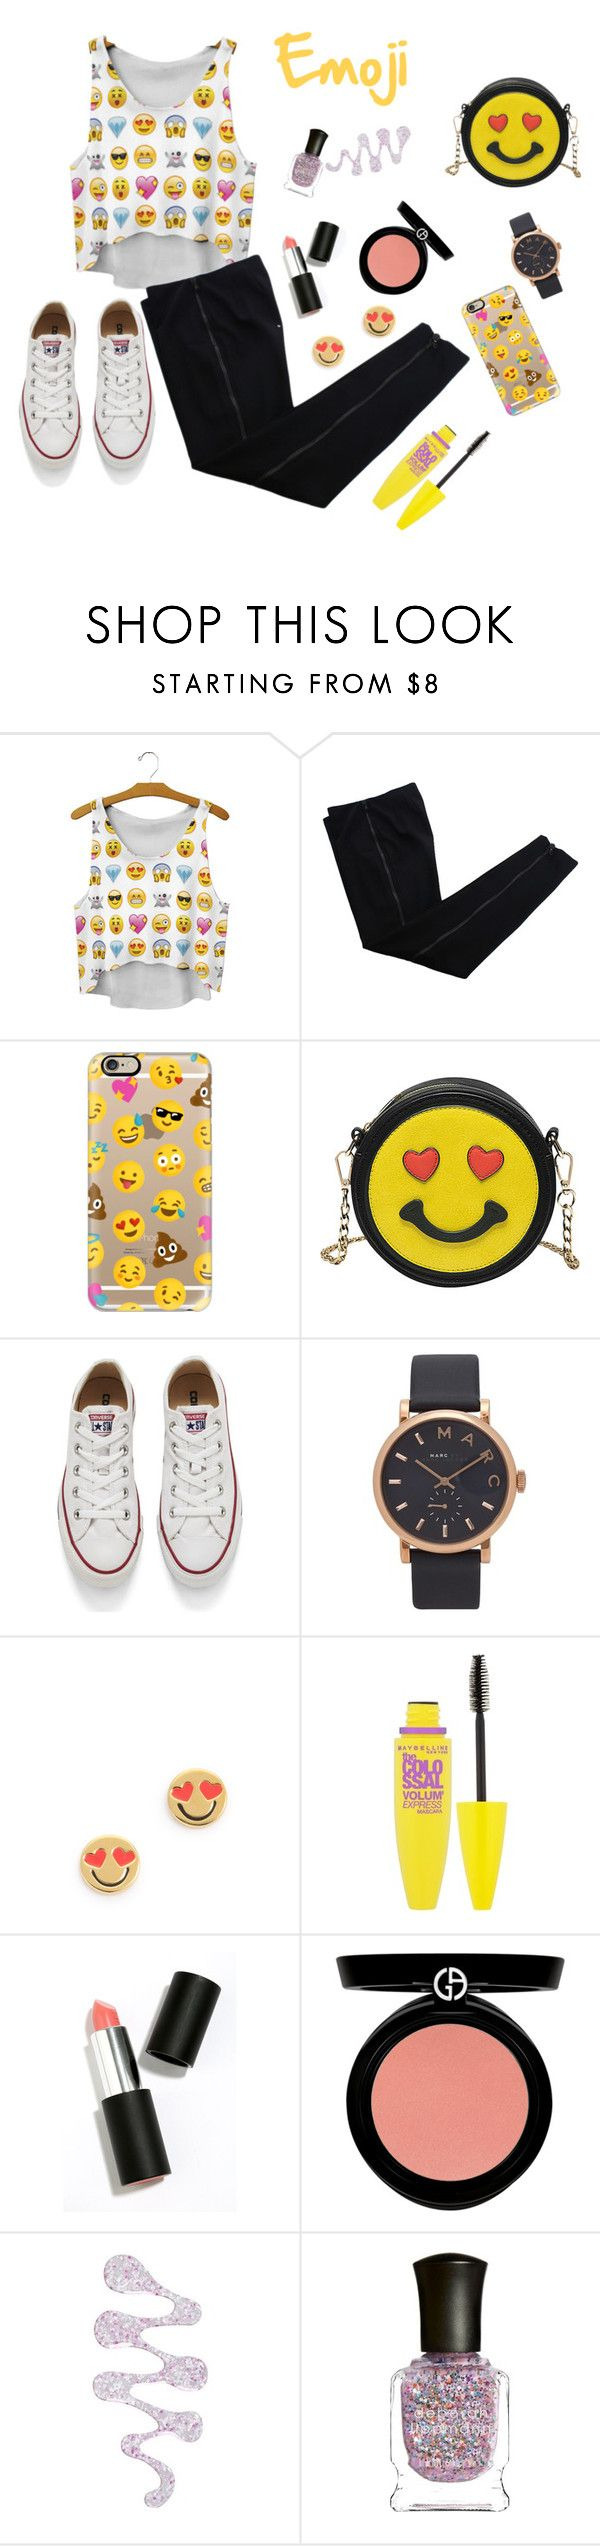 """Emoji"" by victoriafiocco ❤ liked on Polyvore featuring COSTUME NATIONAL, Casetify, Melie Bianco, Converse, Marc Jacobs, Kate Spade, Maybelline, Sigma Beauty, Armani Beauty and Nails Inc."